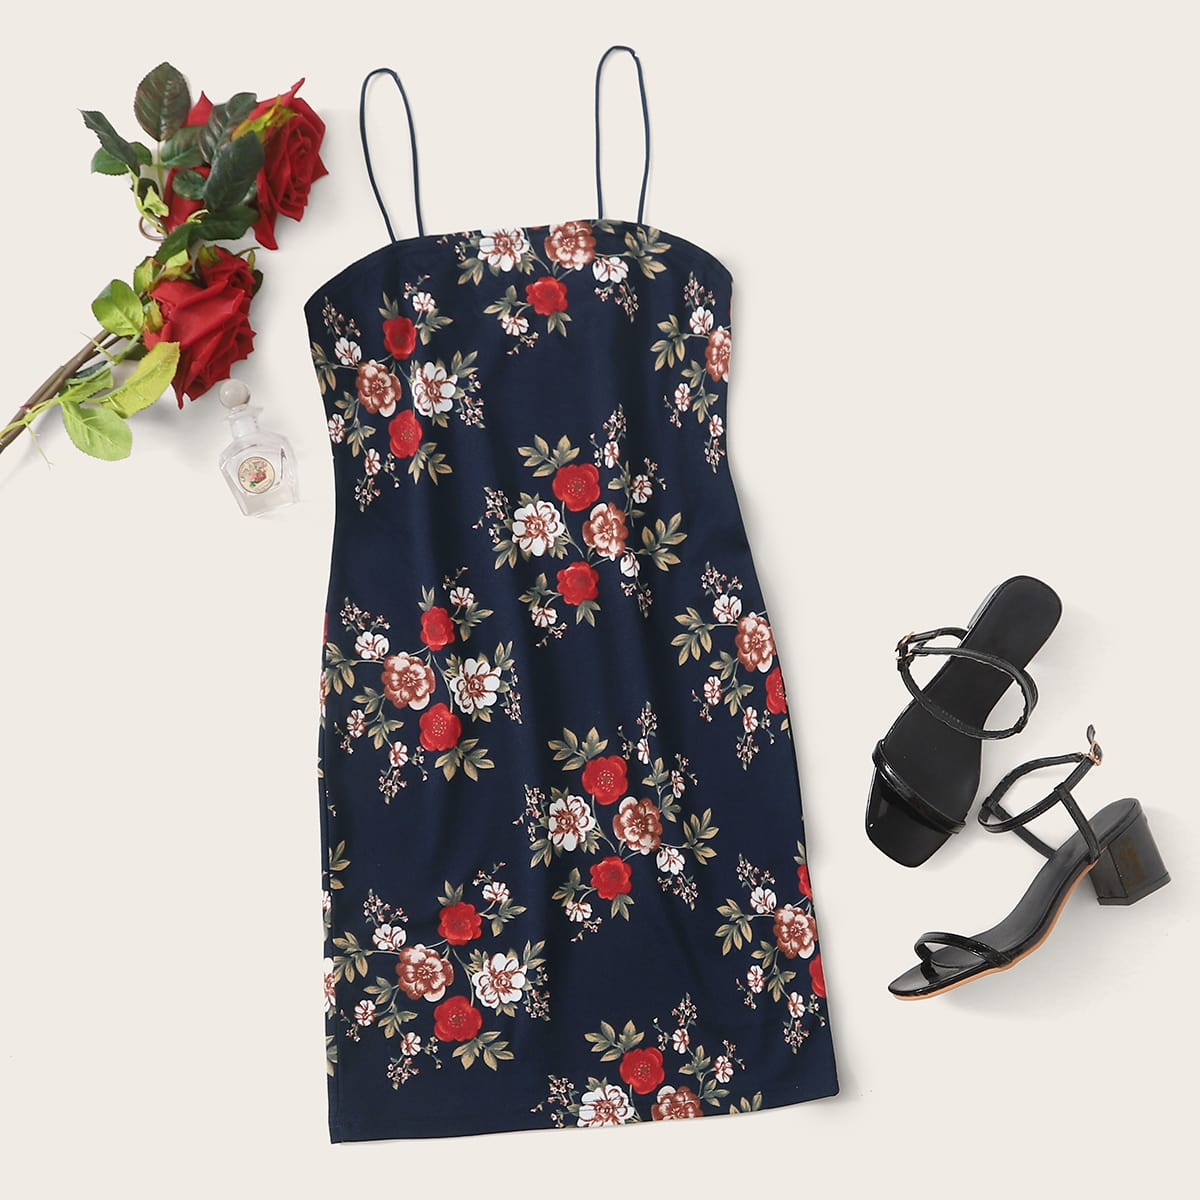 Floral Print Dress, SHEIN  - buy with discount